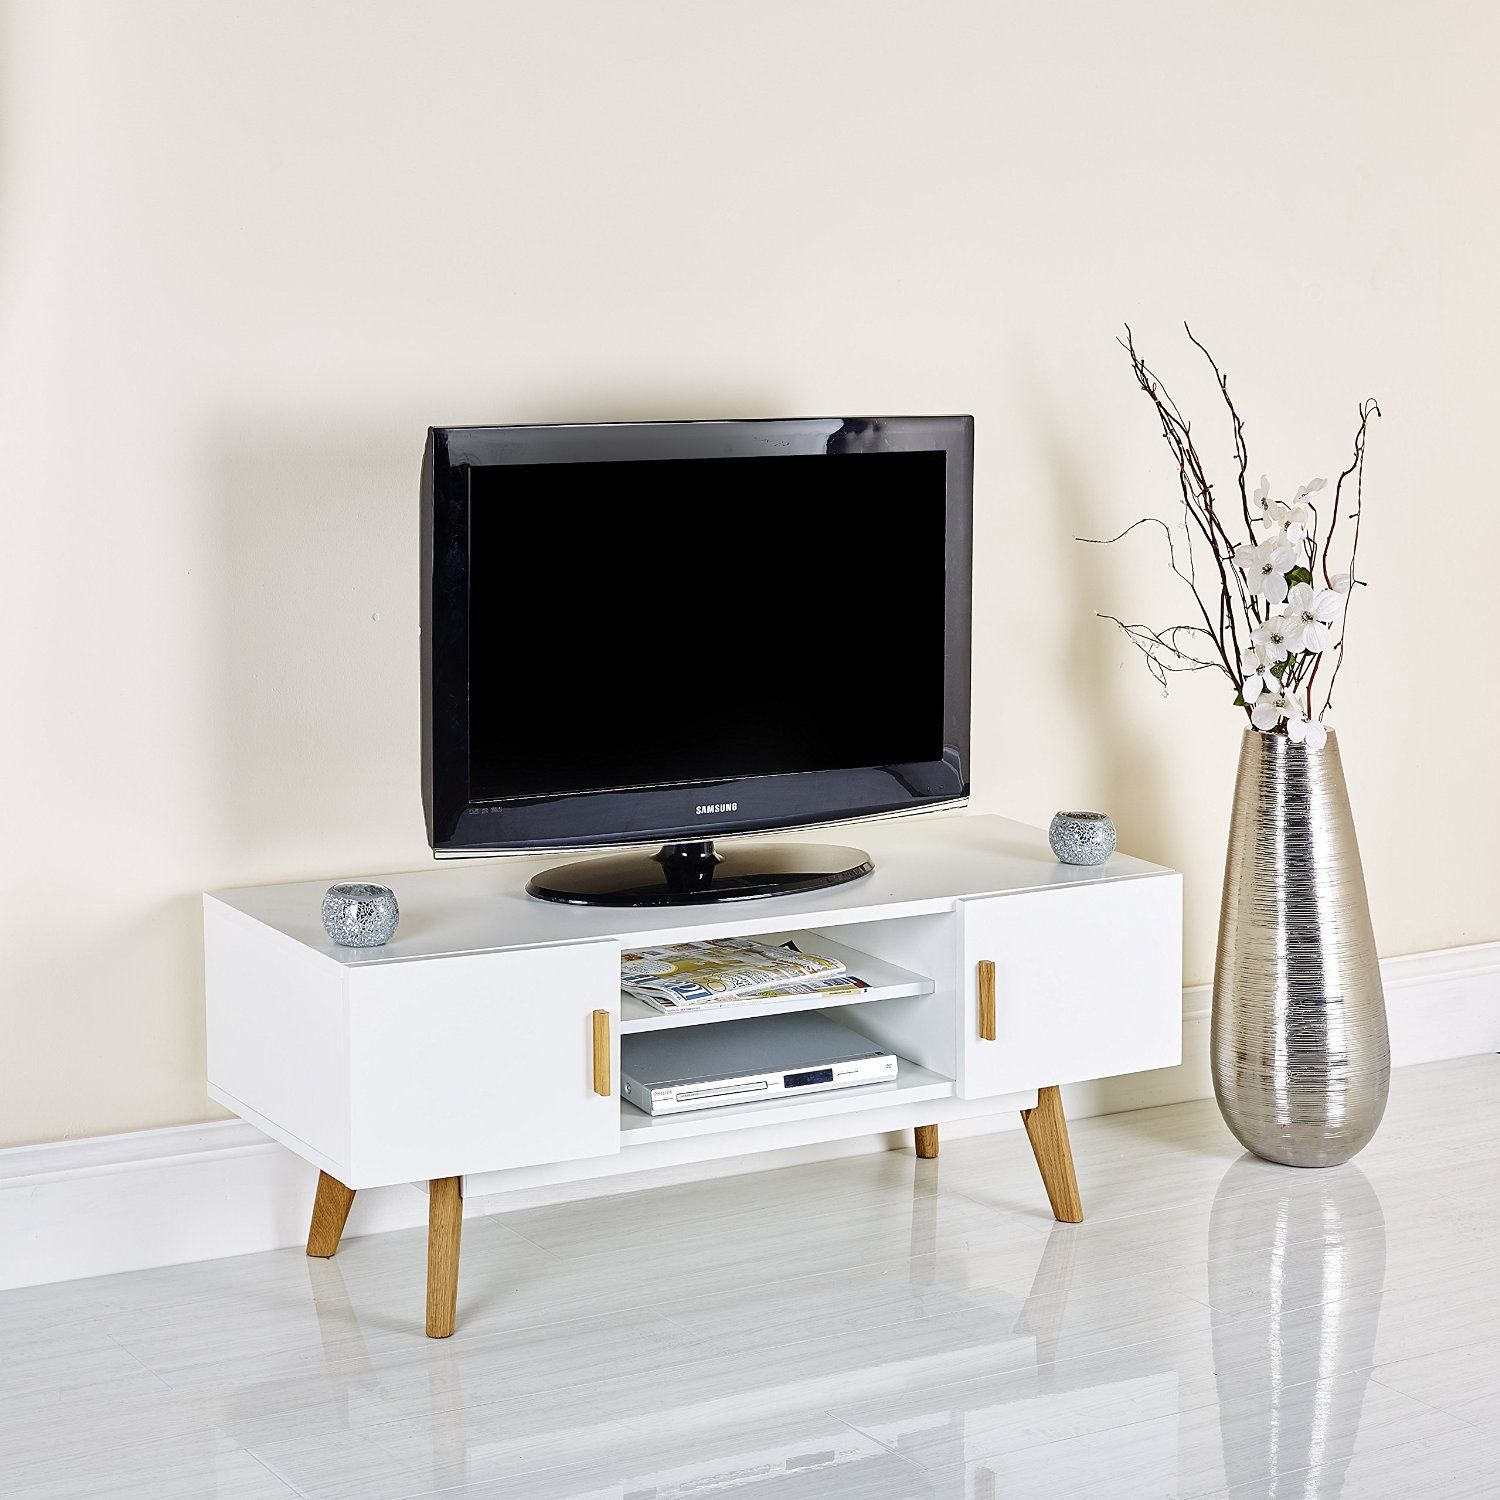 Scandinavian White Retro Tv Stand For 32 To 55 Television Entertainment Unit Cabinet With Shelves White Tv White Tv Stands Retro Living Rooms Retro Tv Stand